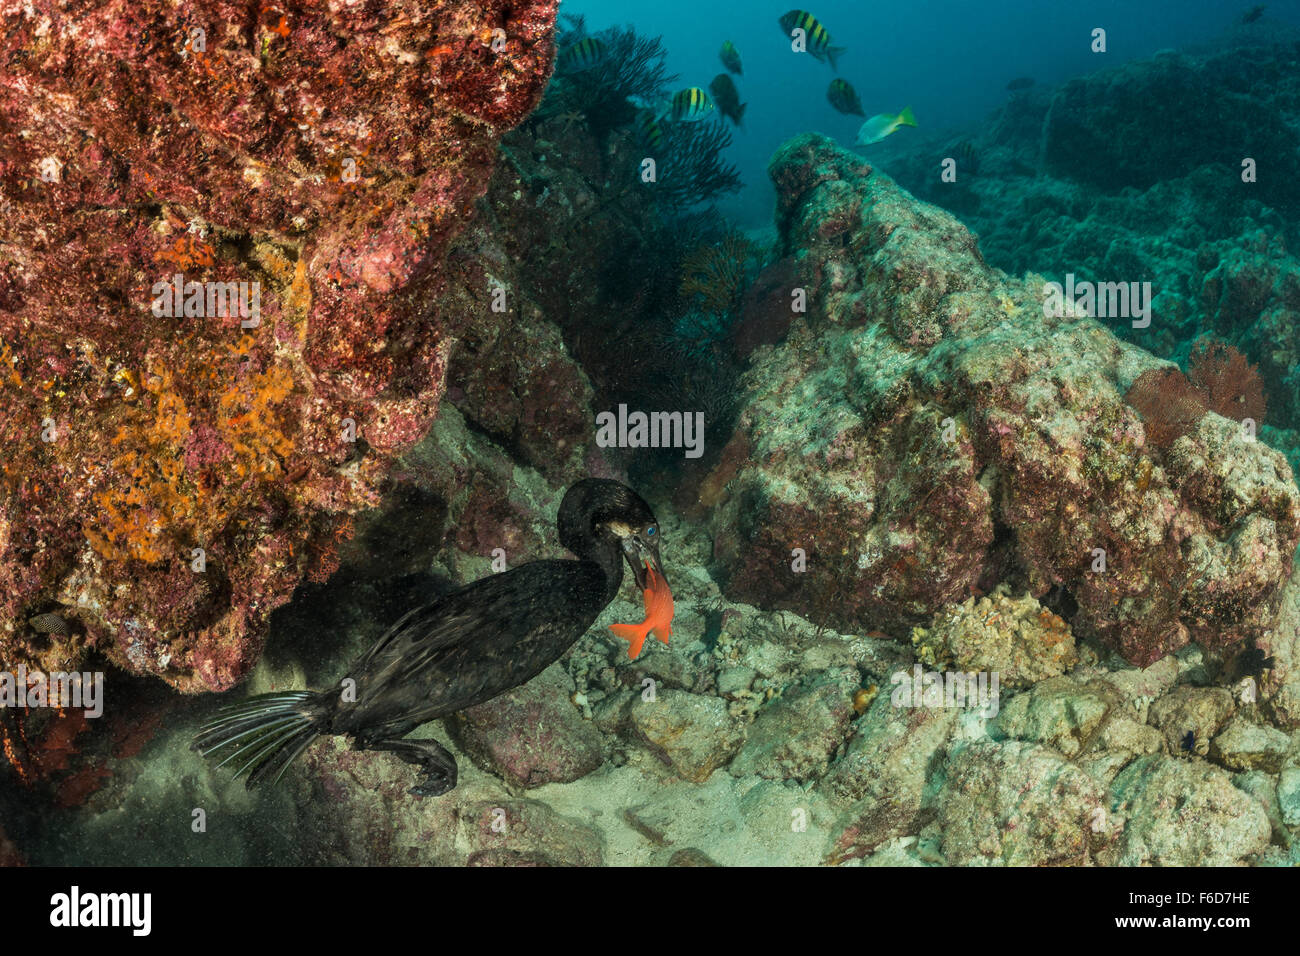 Brandts Cormorant captured Fish, Phalacrocorax penicillatus, La Paz, Baja California Sur, Mexico Stock Photo